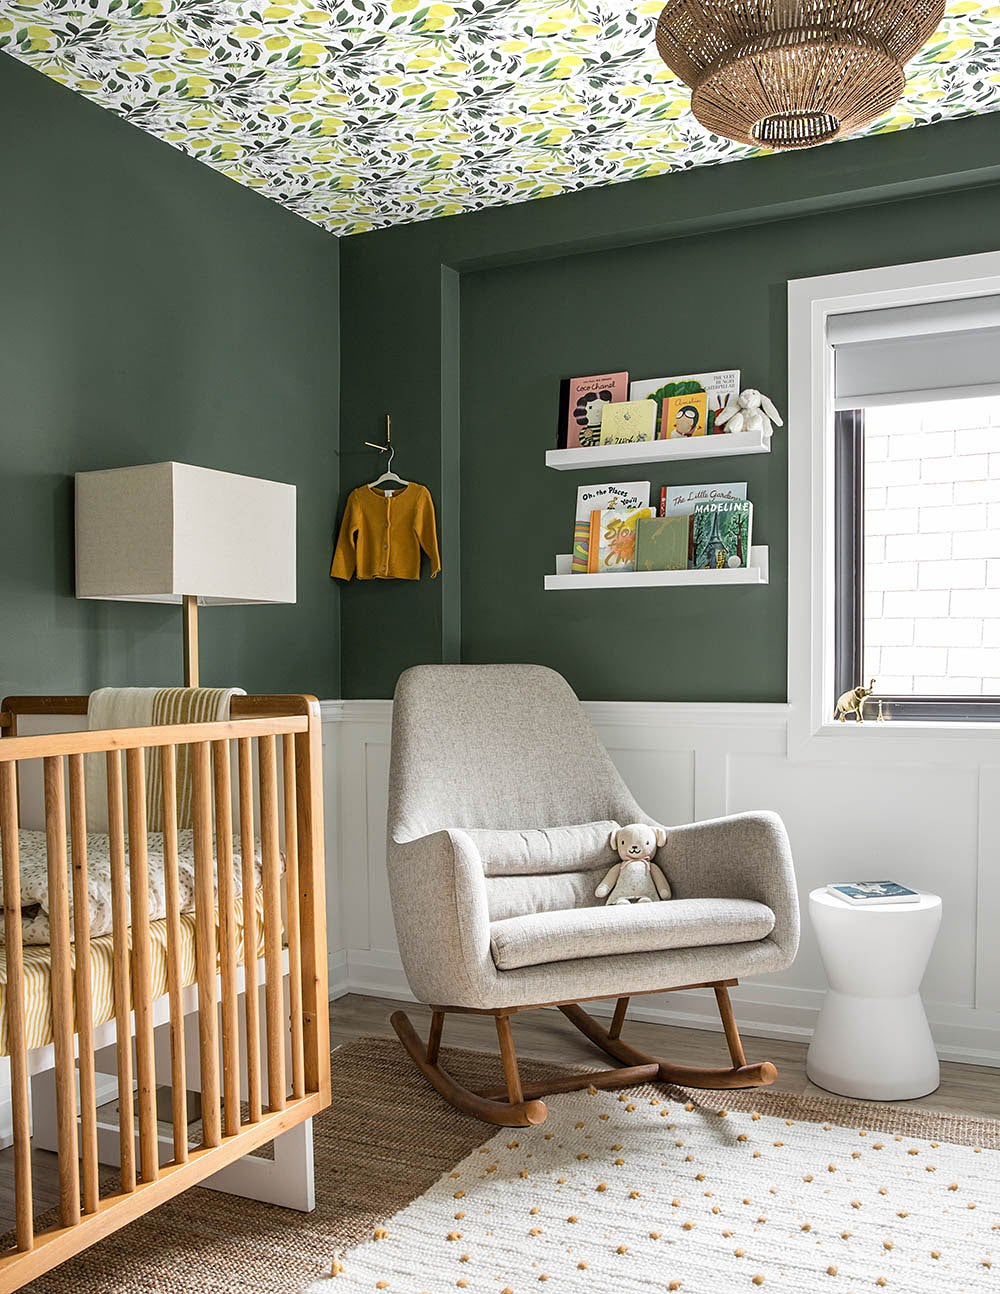 00-FEATURE-chase-paper-nursery-trends-2021-domino